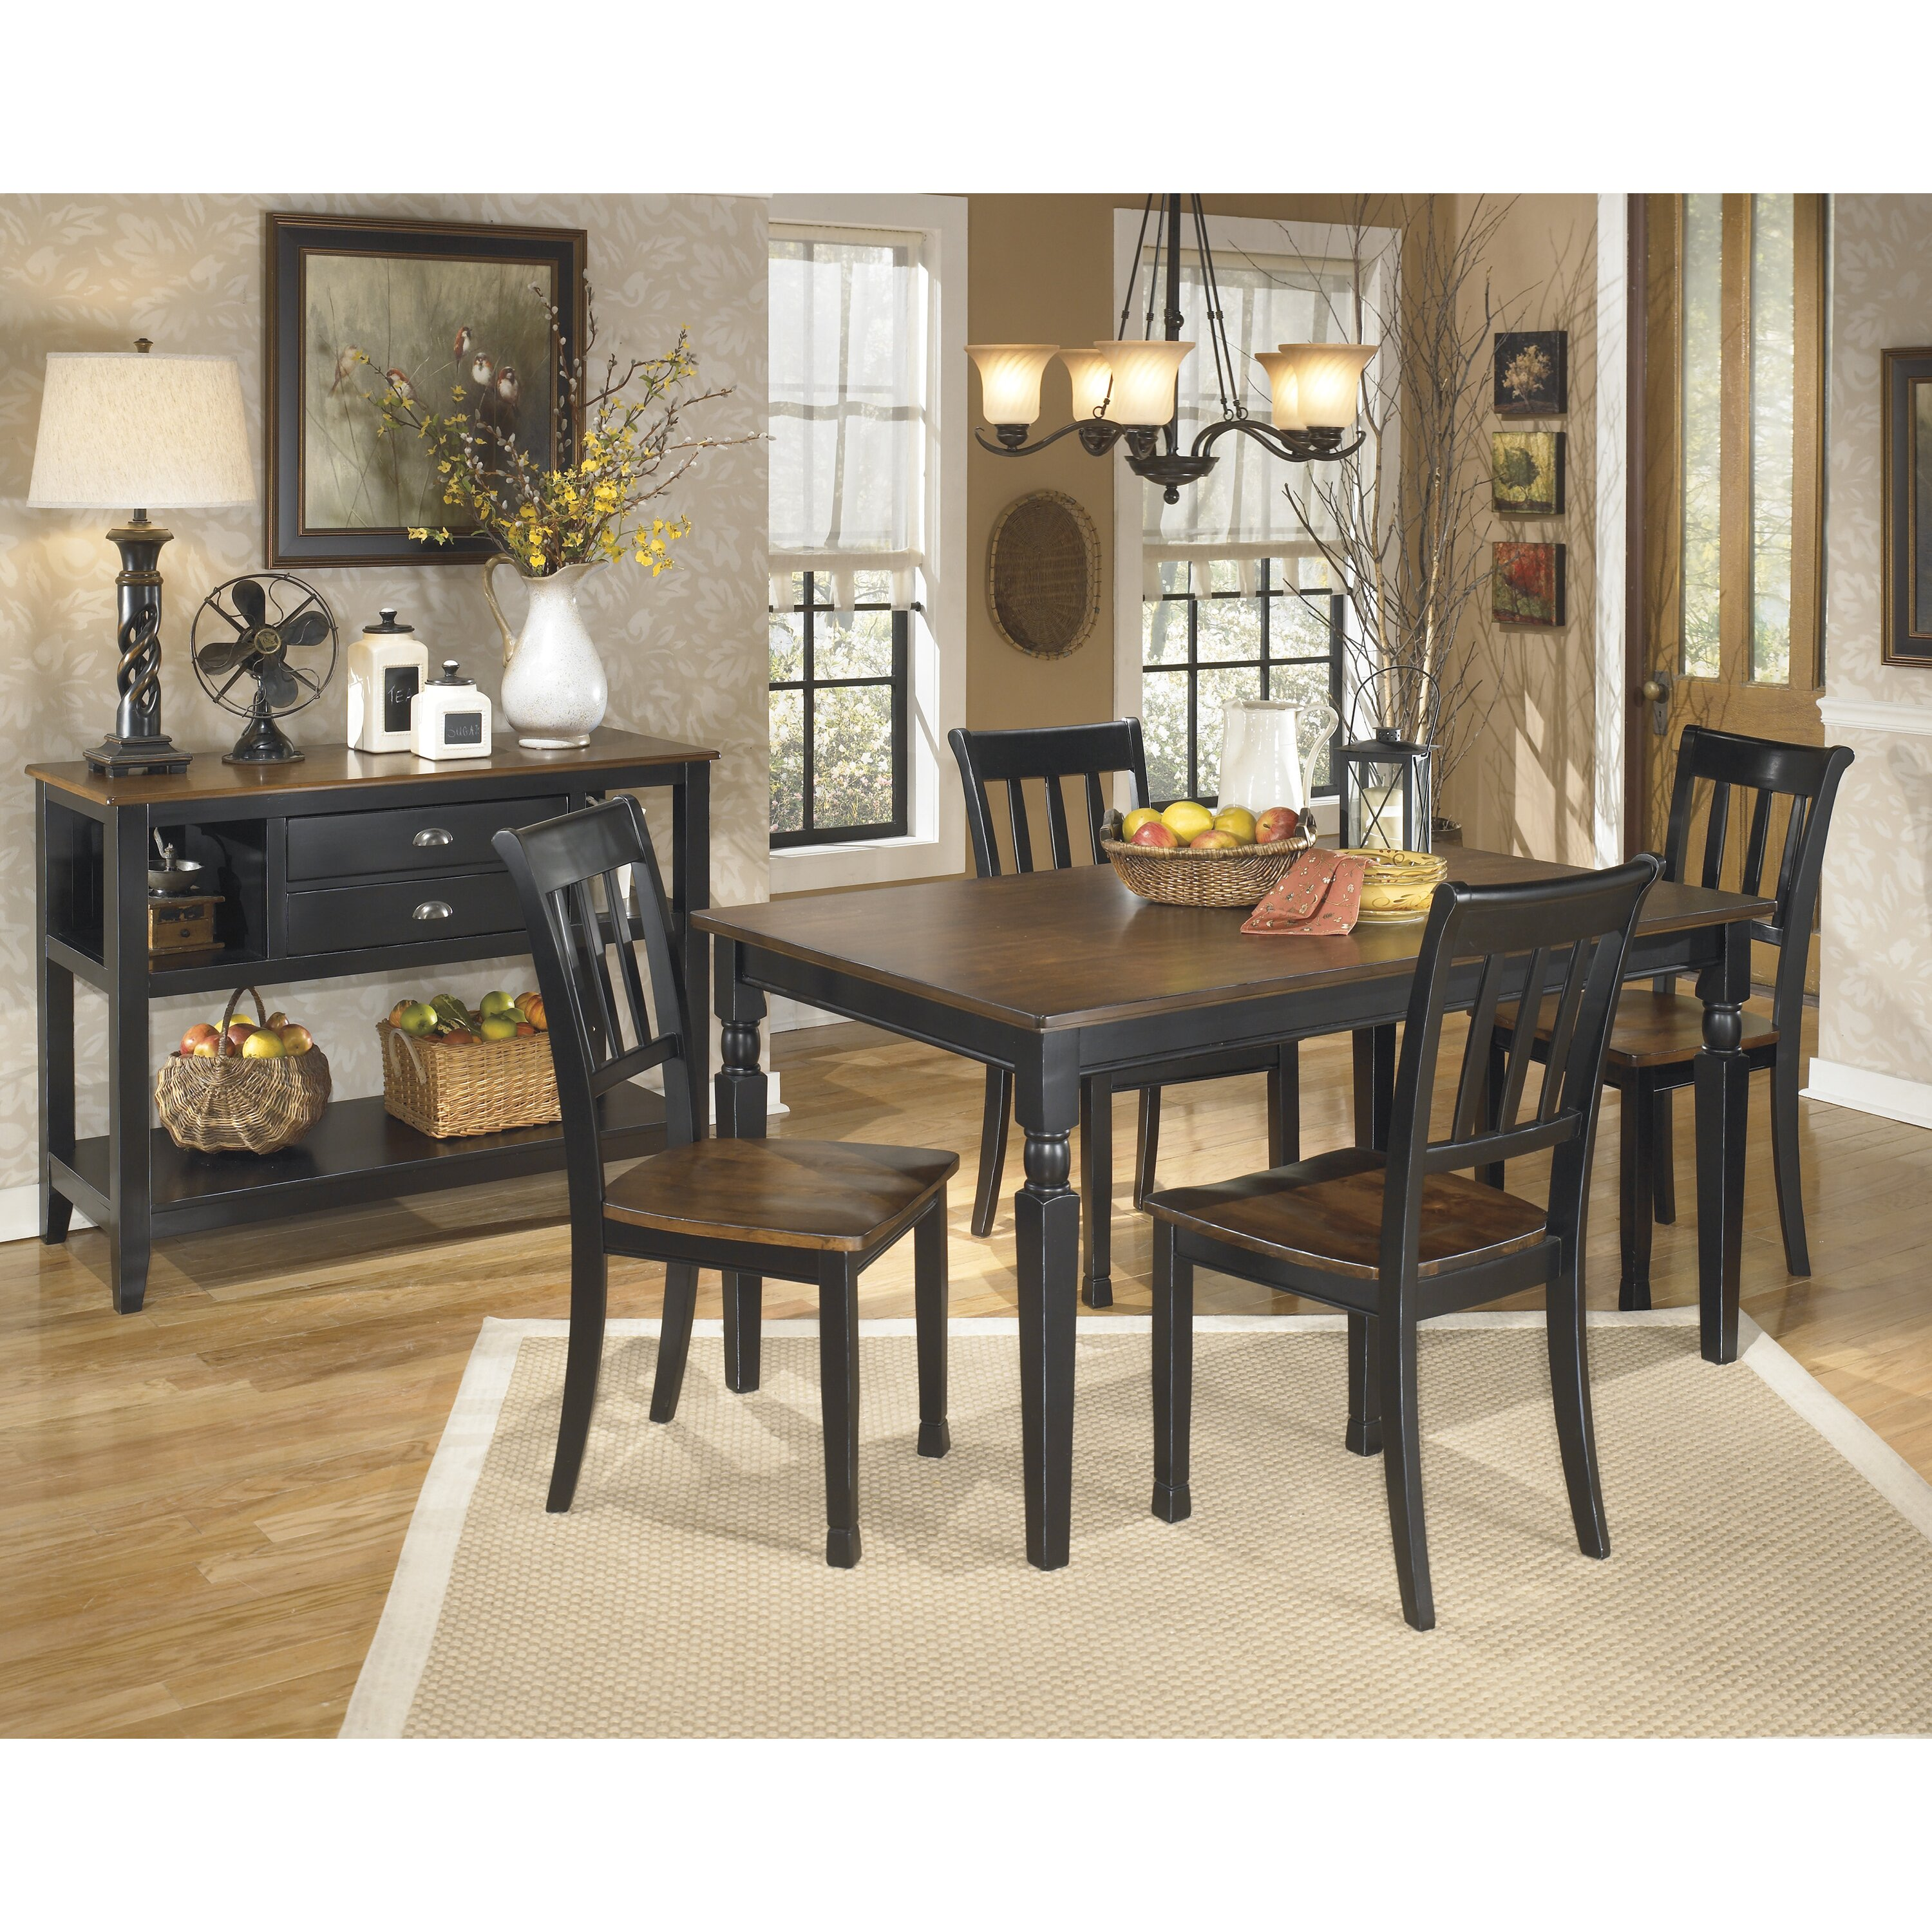 Dining Room Sets 5 Piece: Andover Mills 5 Piece Dining Set & Reviews